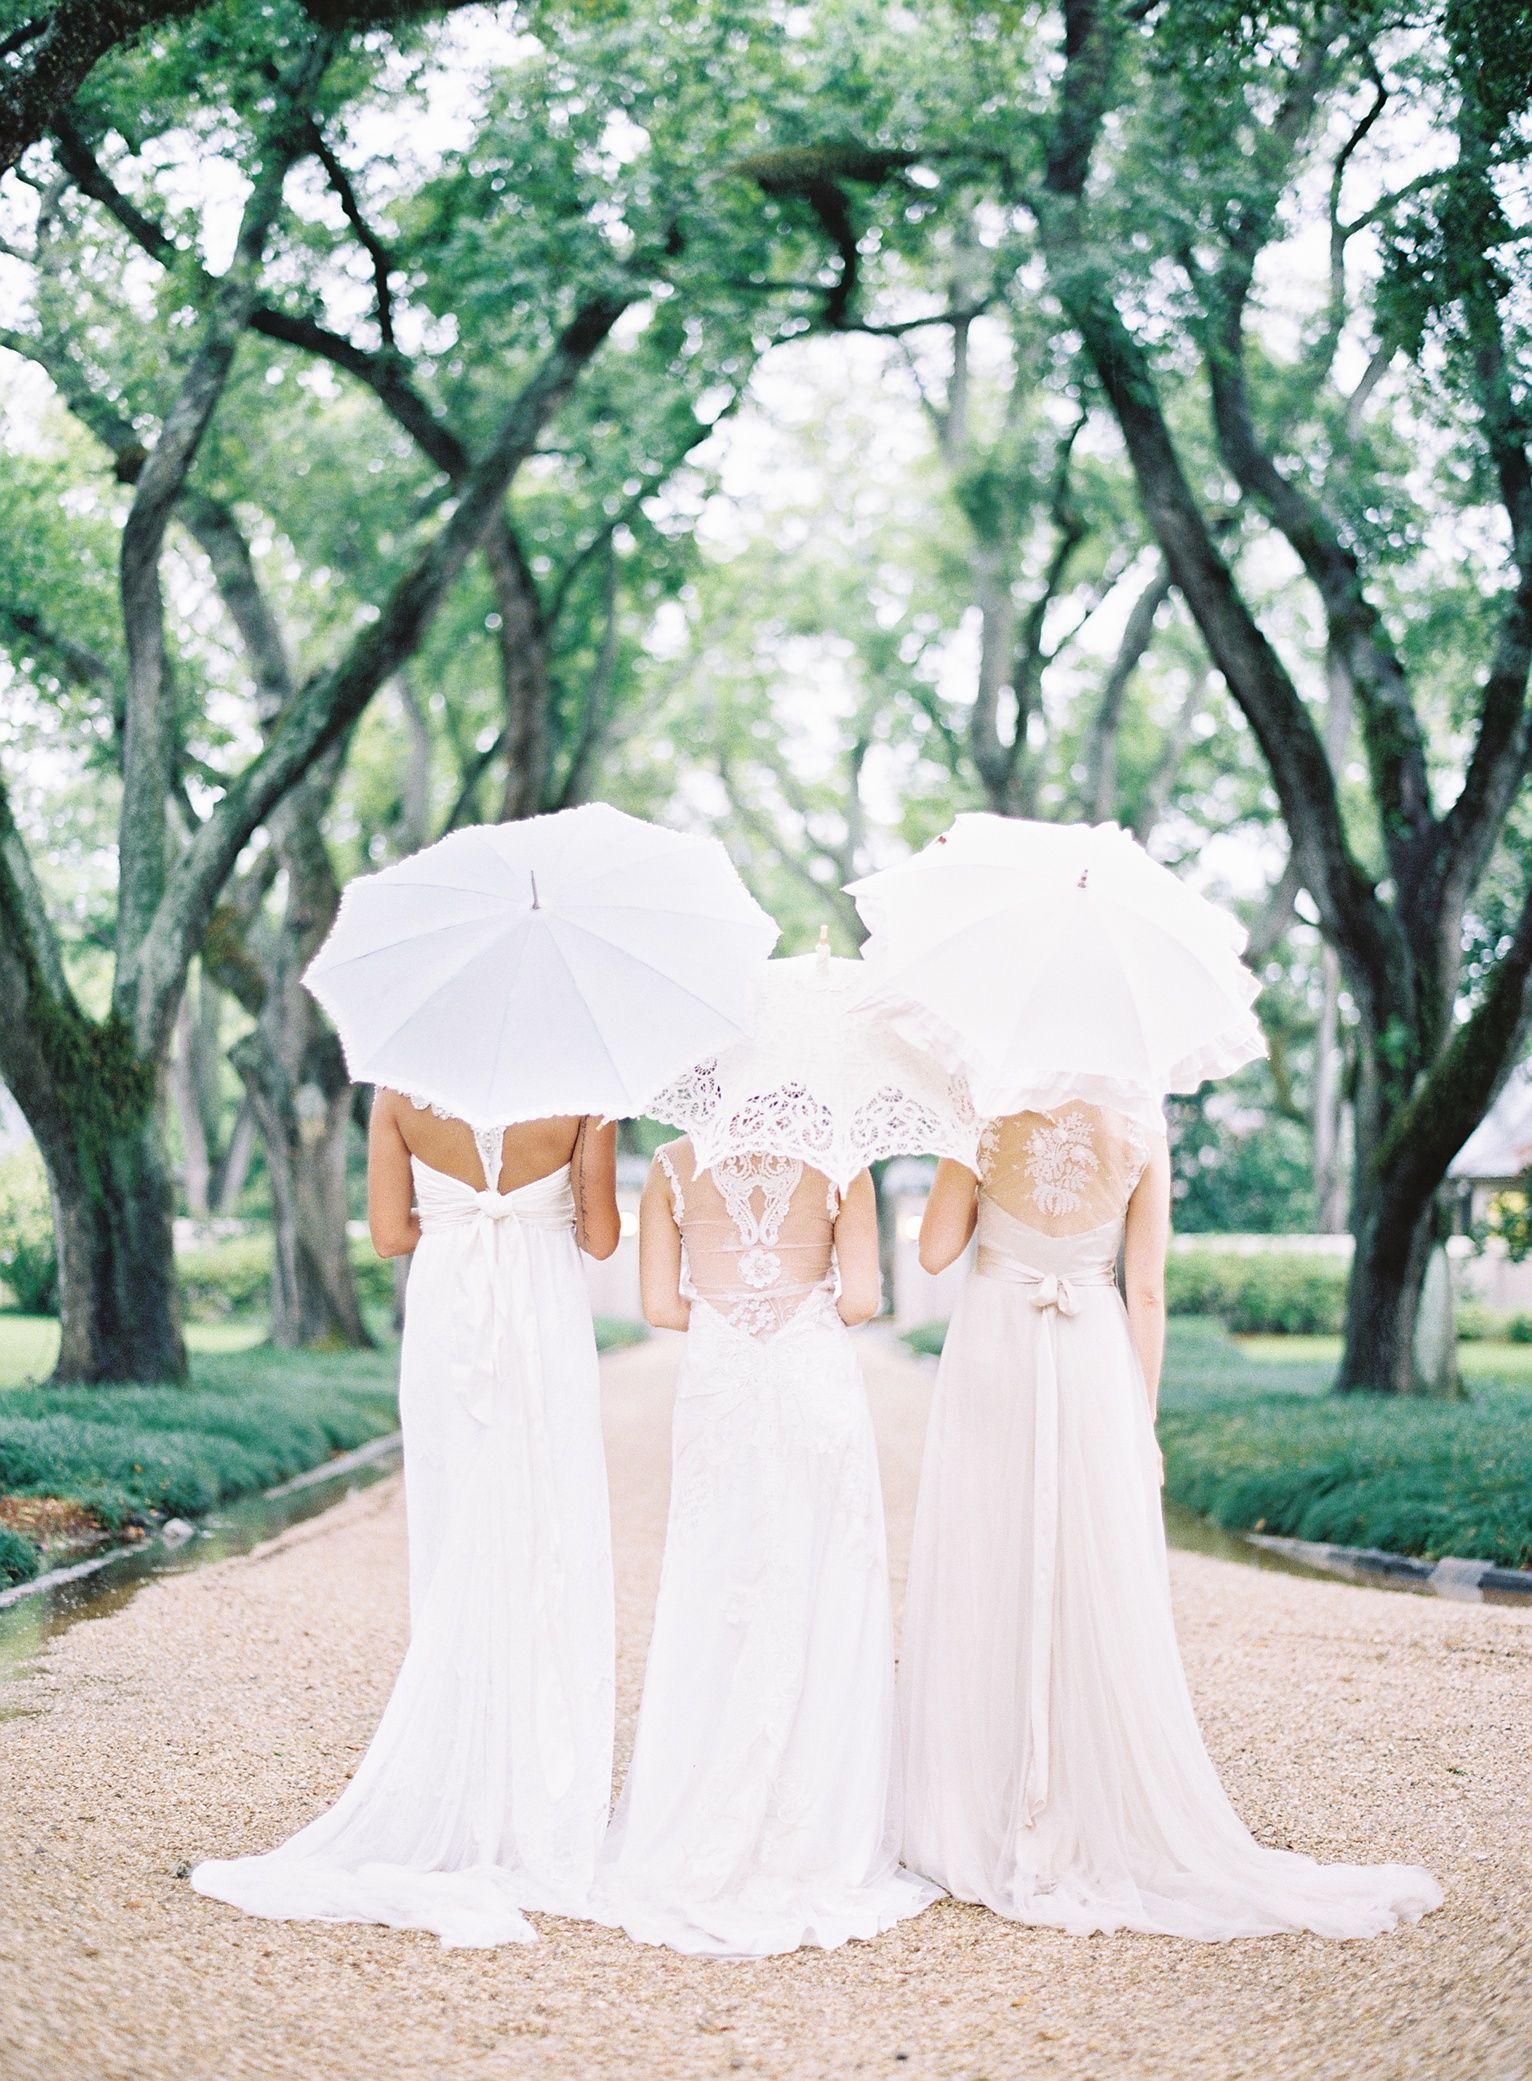 Brides with Parasols | Classic weddings, Mariage and Wedding